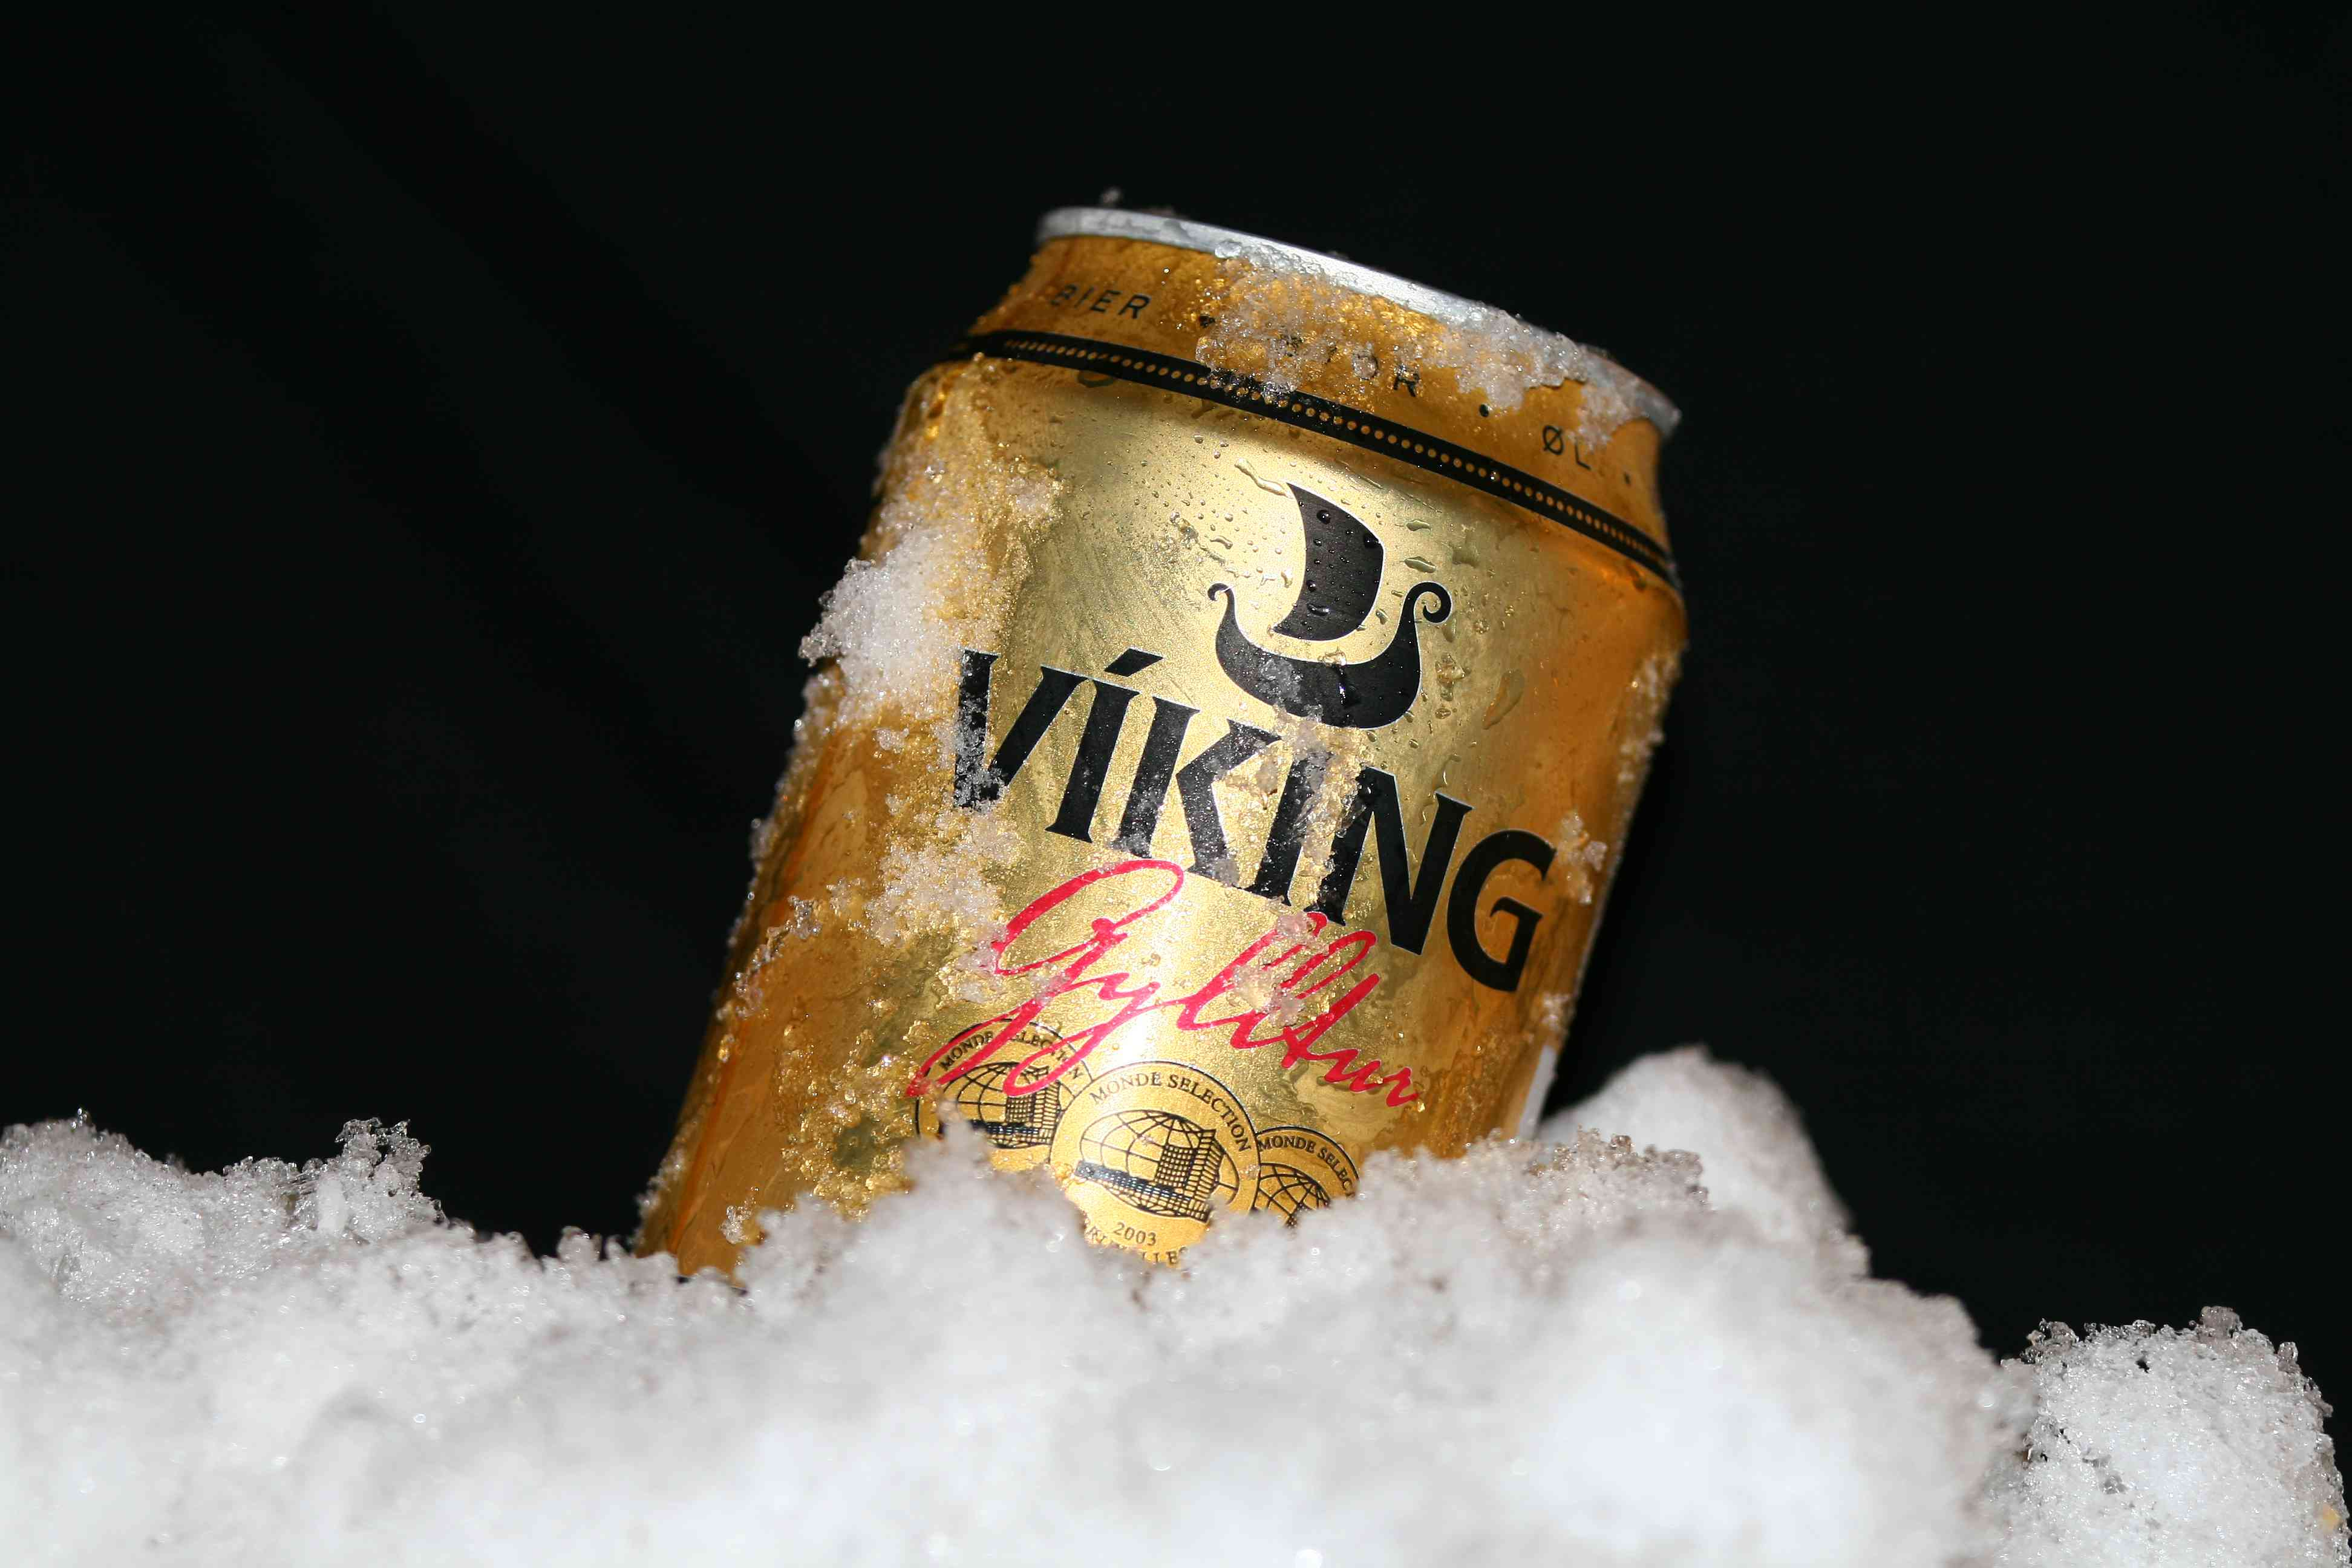 Can of viking gold beer half-buried in shaved ice